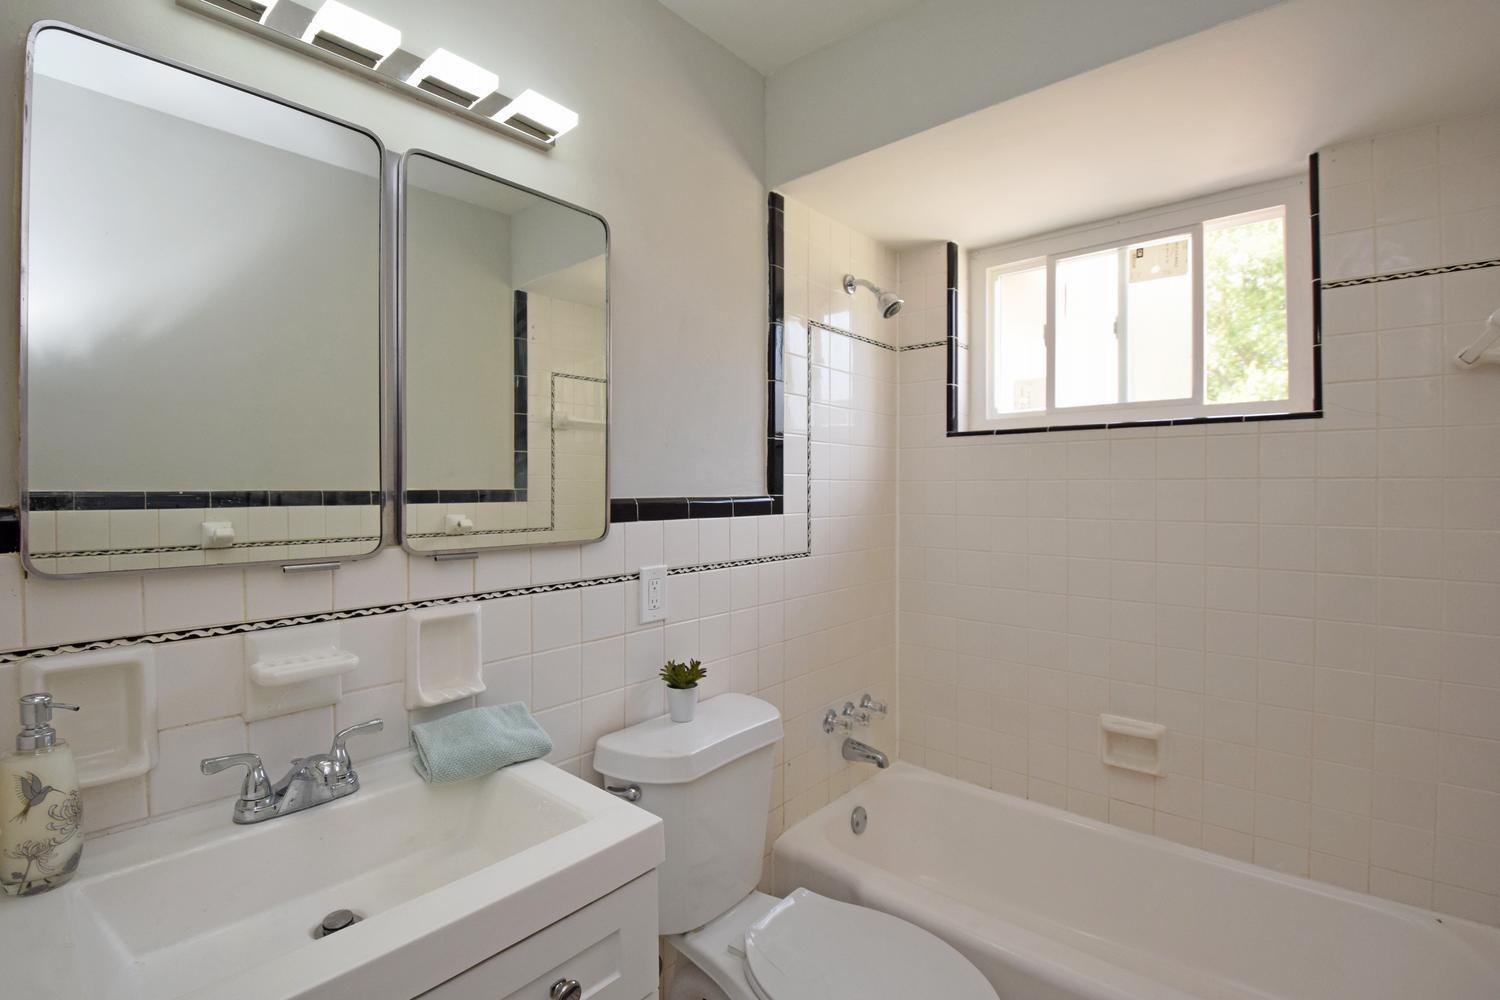 Primary Bathroom with refinished tub, new vanity, commode, Medicine Cabinets and lighting